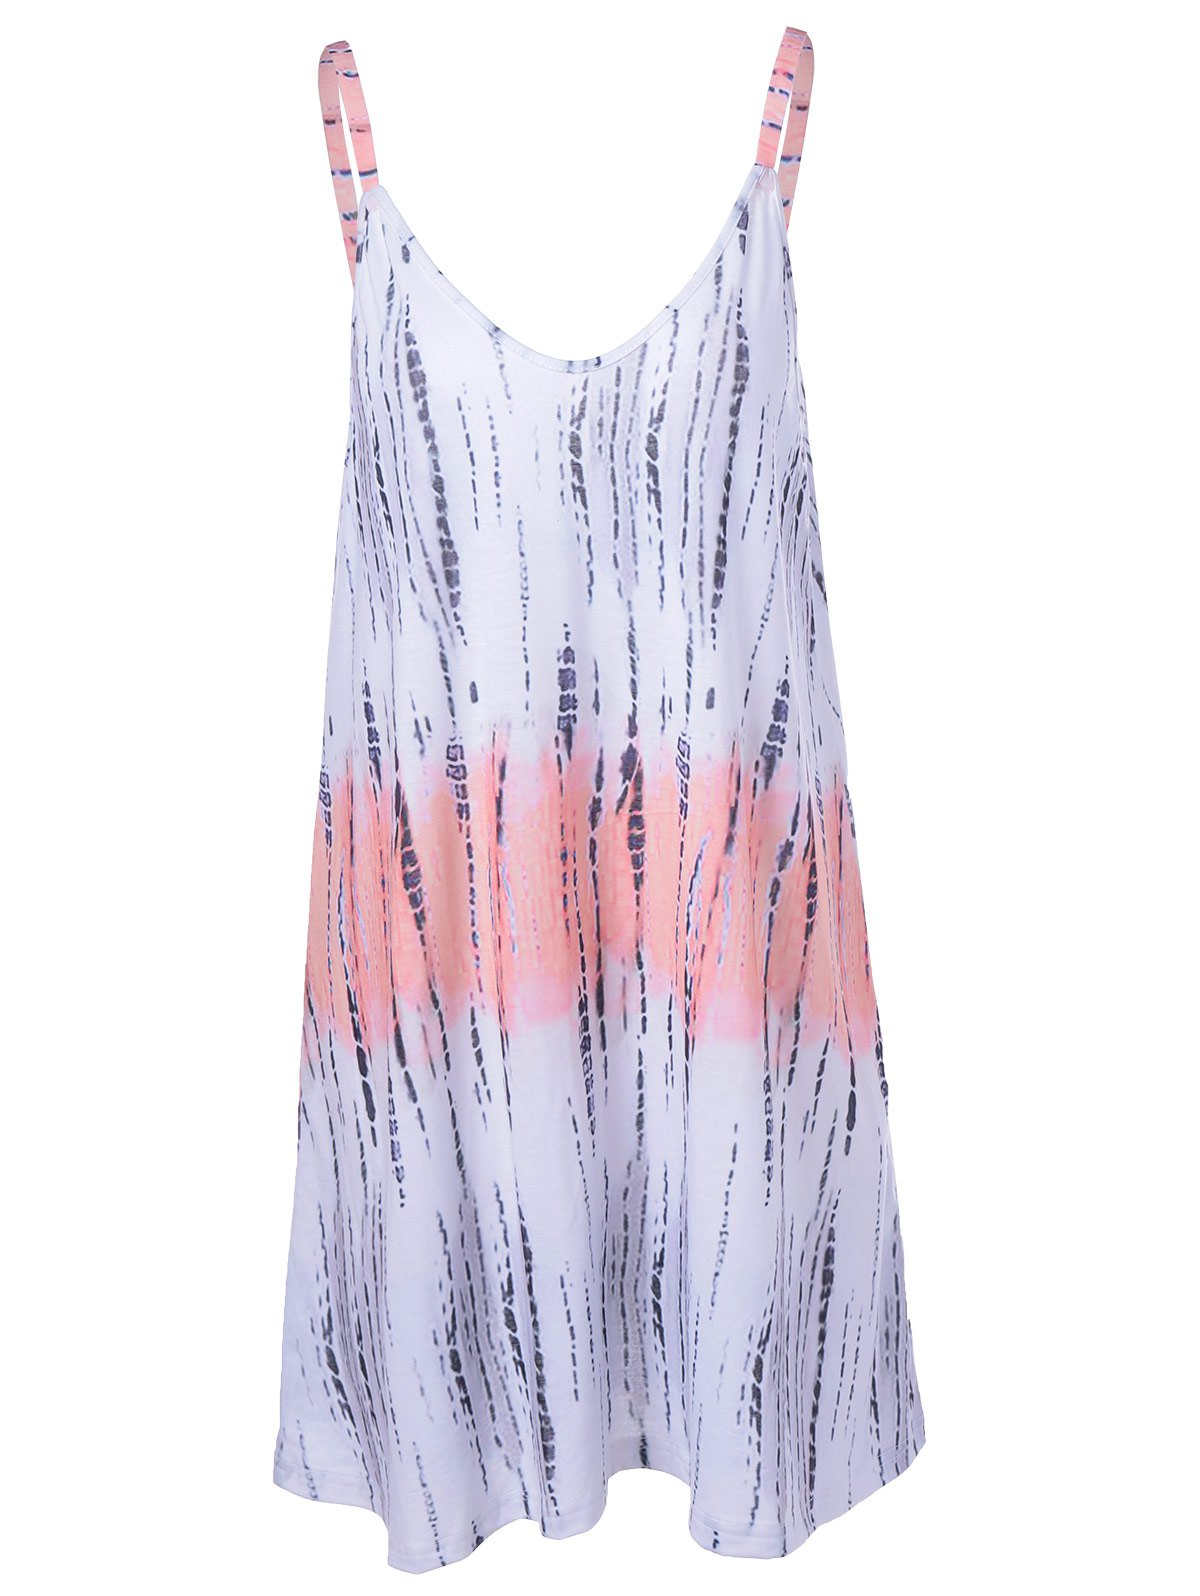 Fashionable Backless Tie-Dye Weave Spaghetti Strap Dress For Women - COLORMIX XL